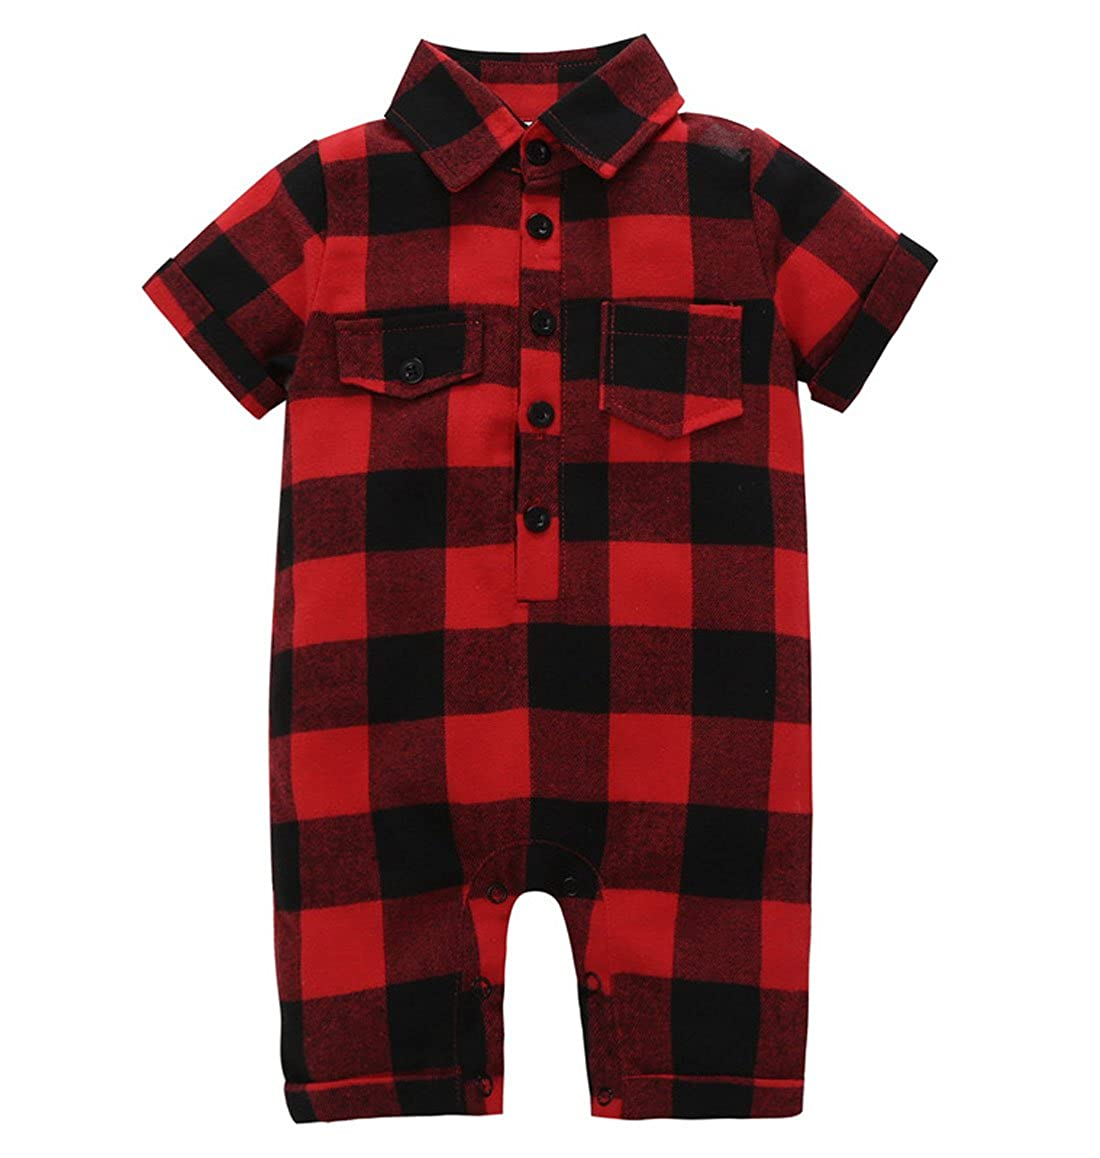 Tomfree Baby Boys Girls Red Black Plaid Collar Rompers Short Sleeve Bodysuits Outfits